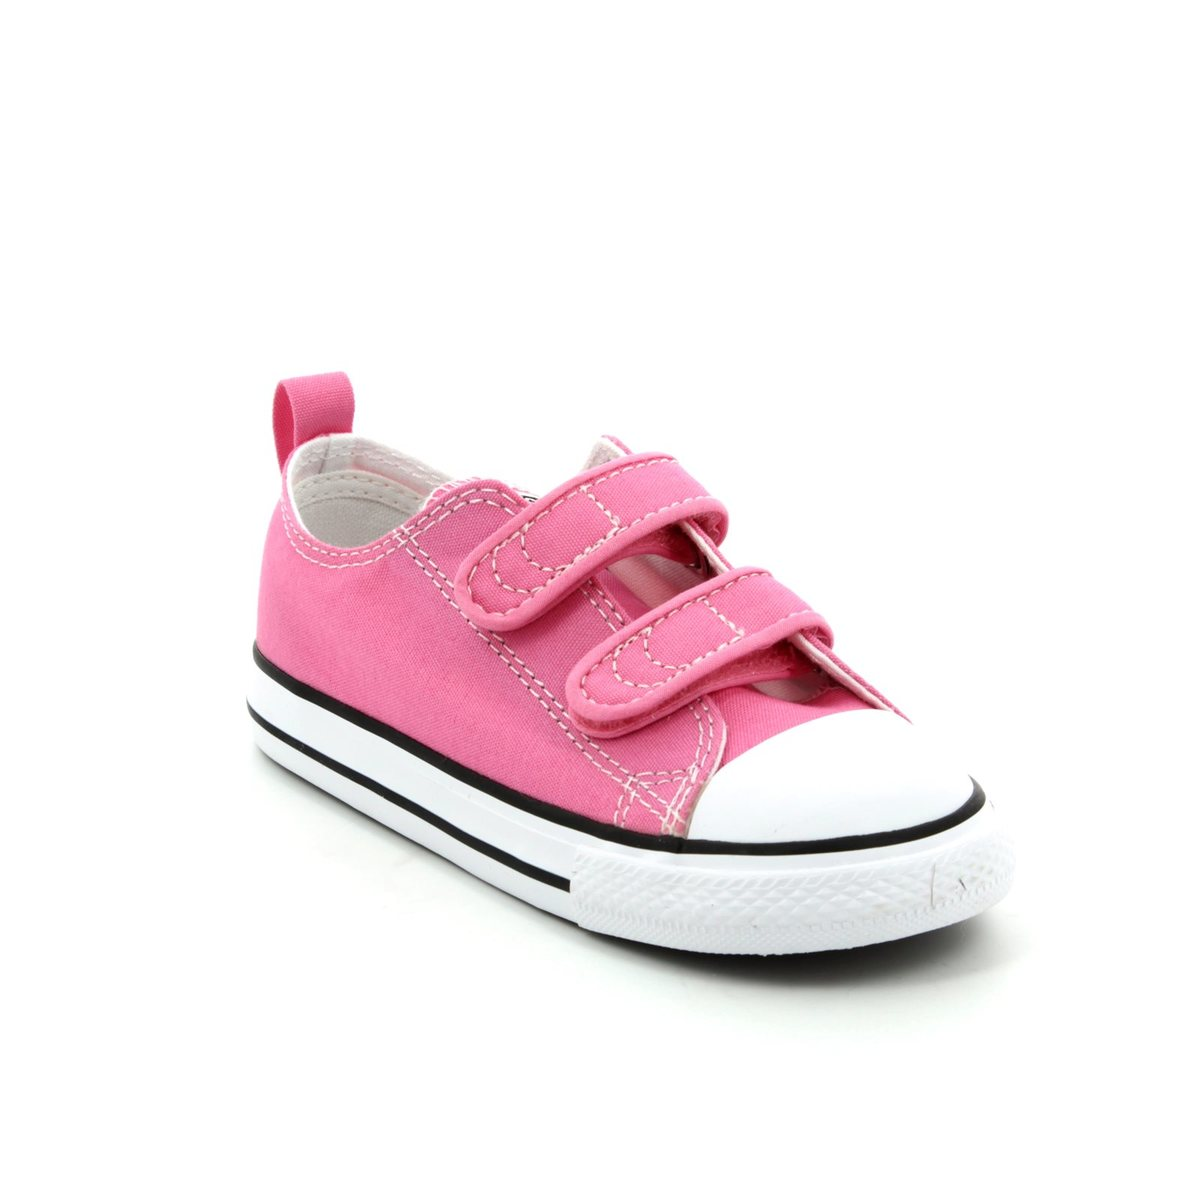 7c8afdf769c1 Converse Trainers - Pink - 709447F 650 CHUCK TAYLOR ALLSTAR 2V Velcro